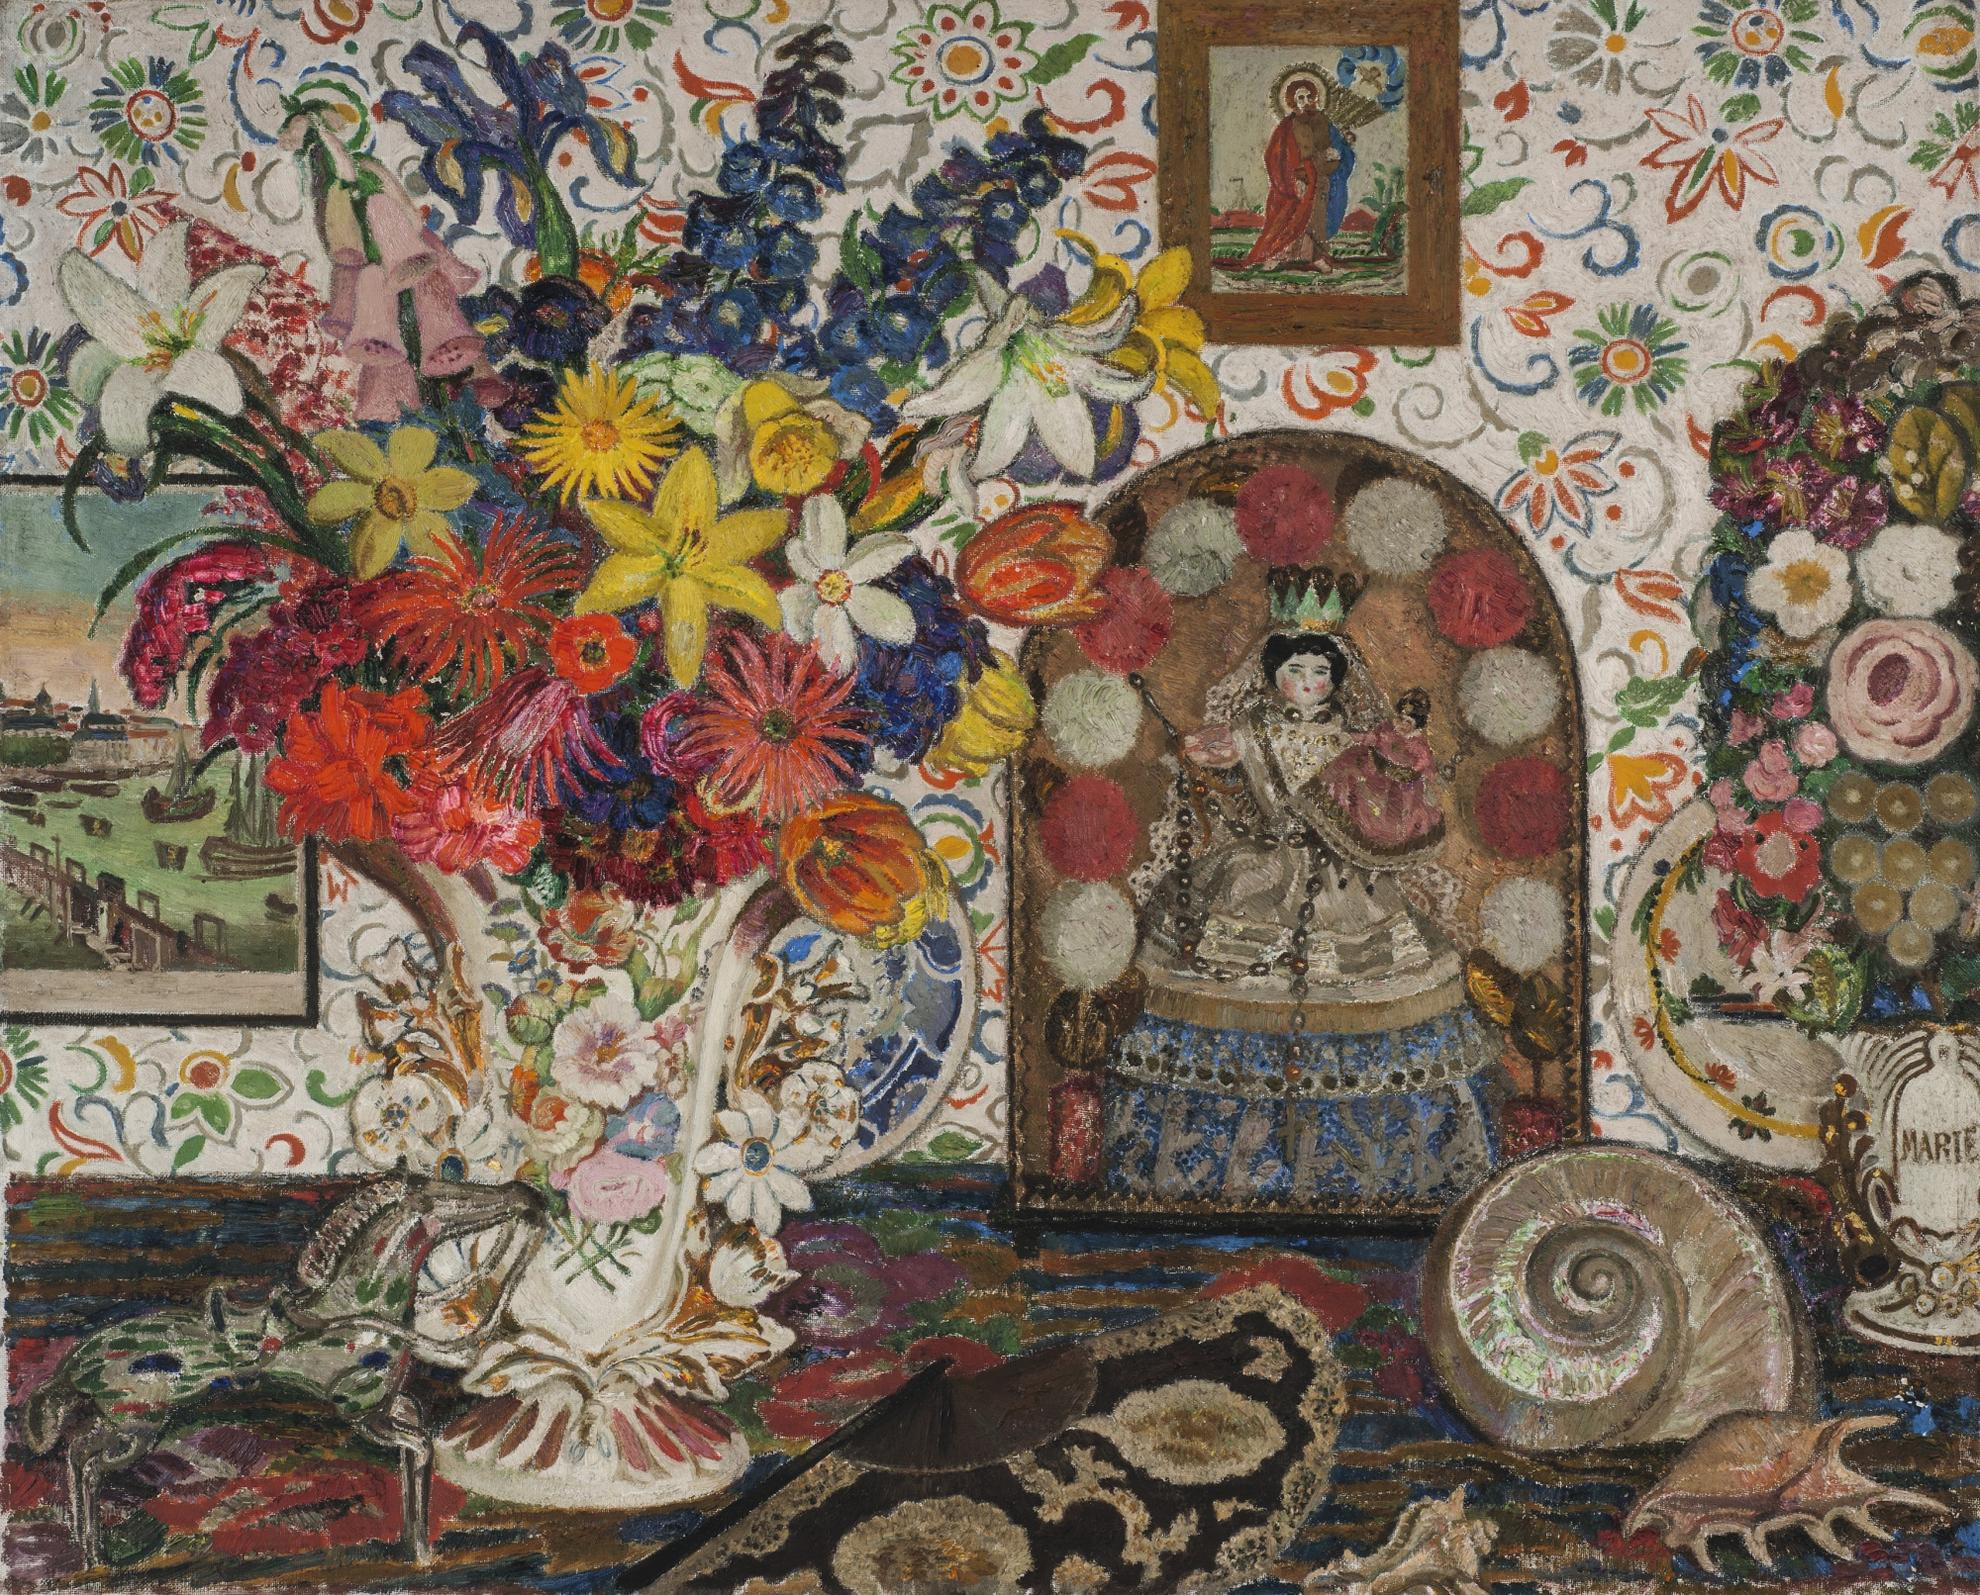 Leon De Smet-Still Life With Flowers And Shells-1930